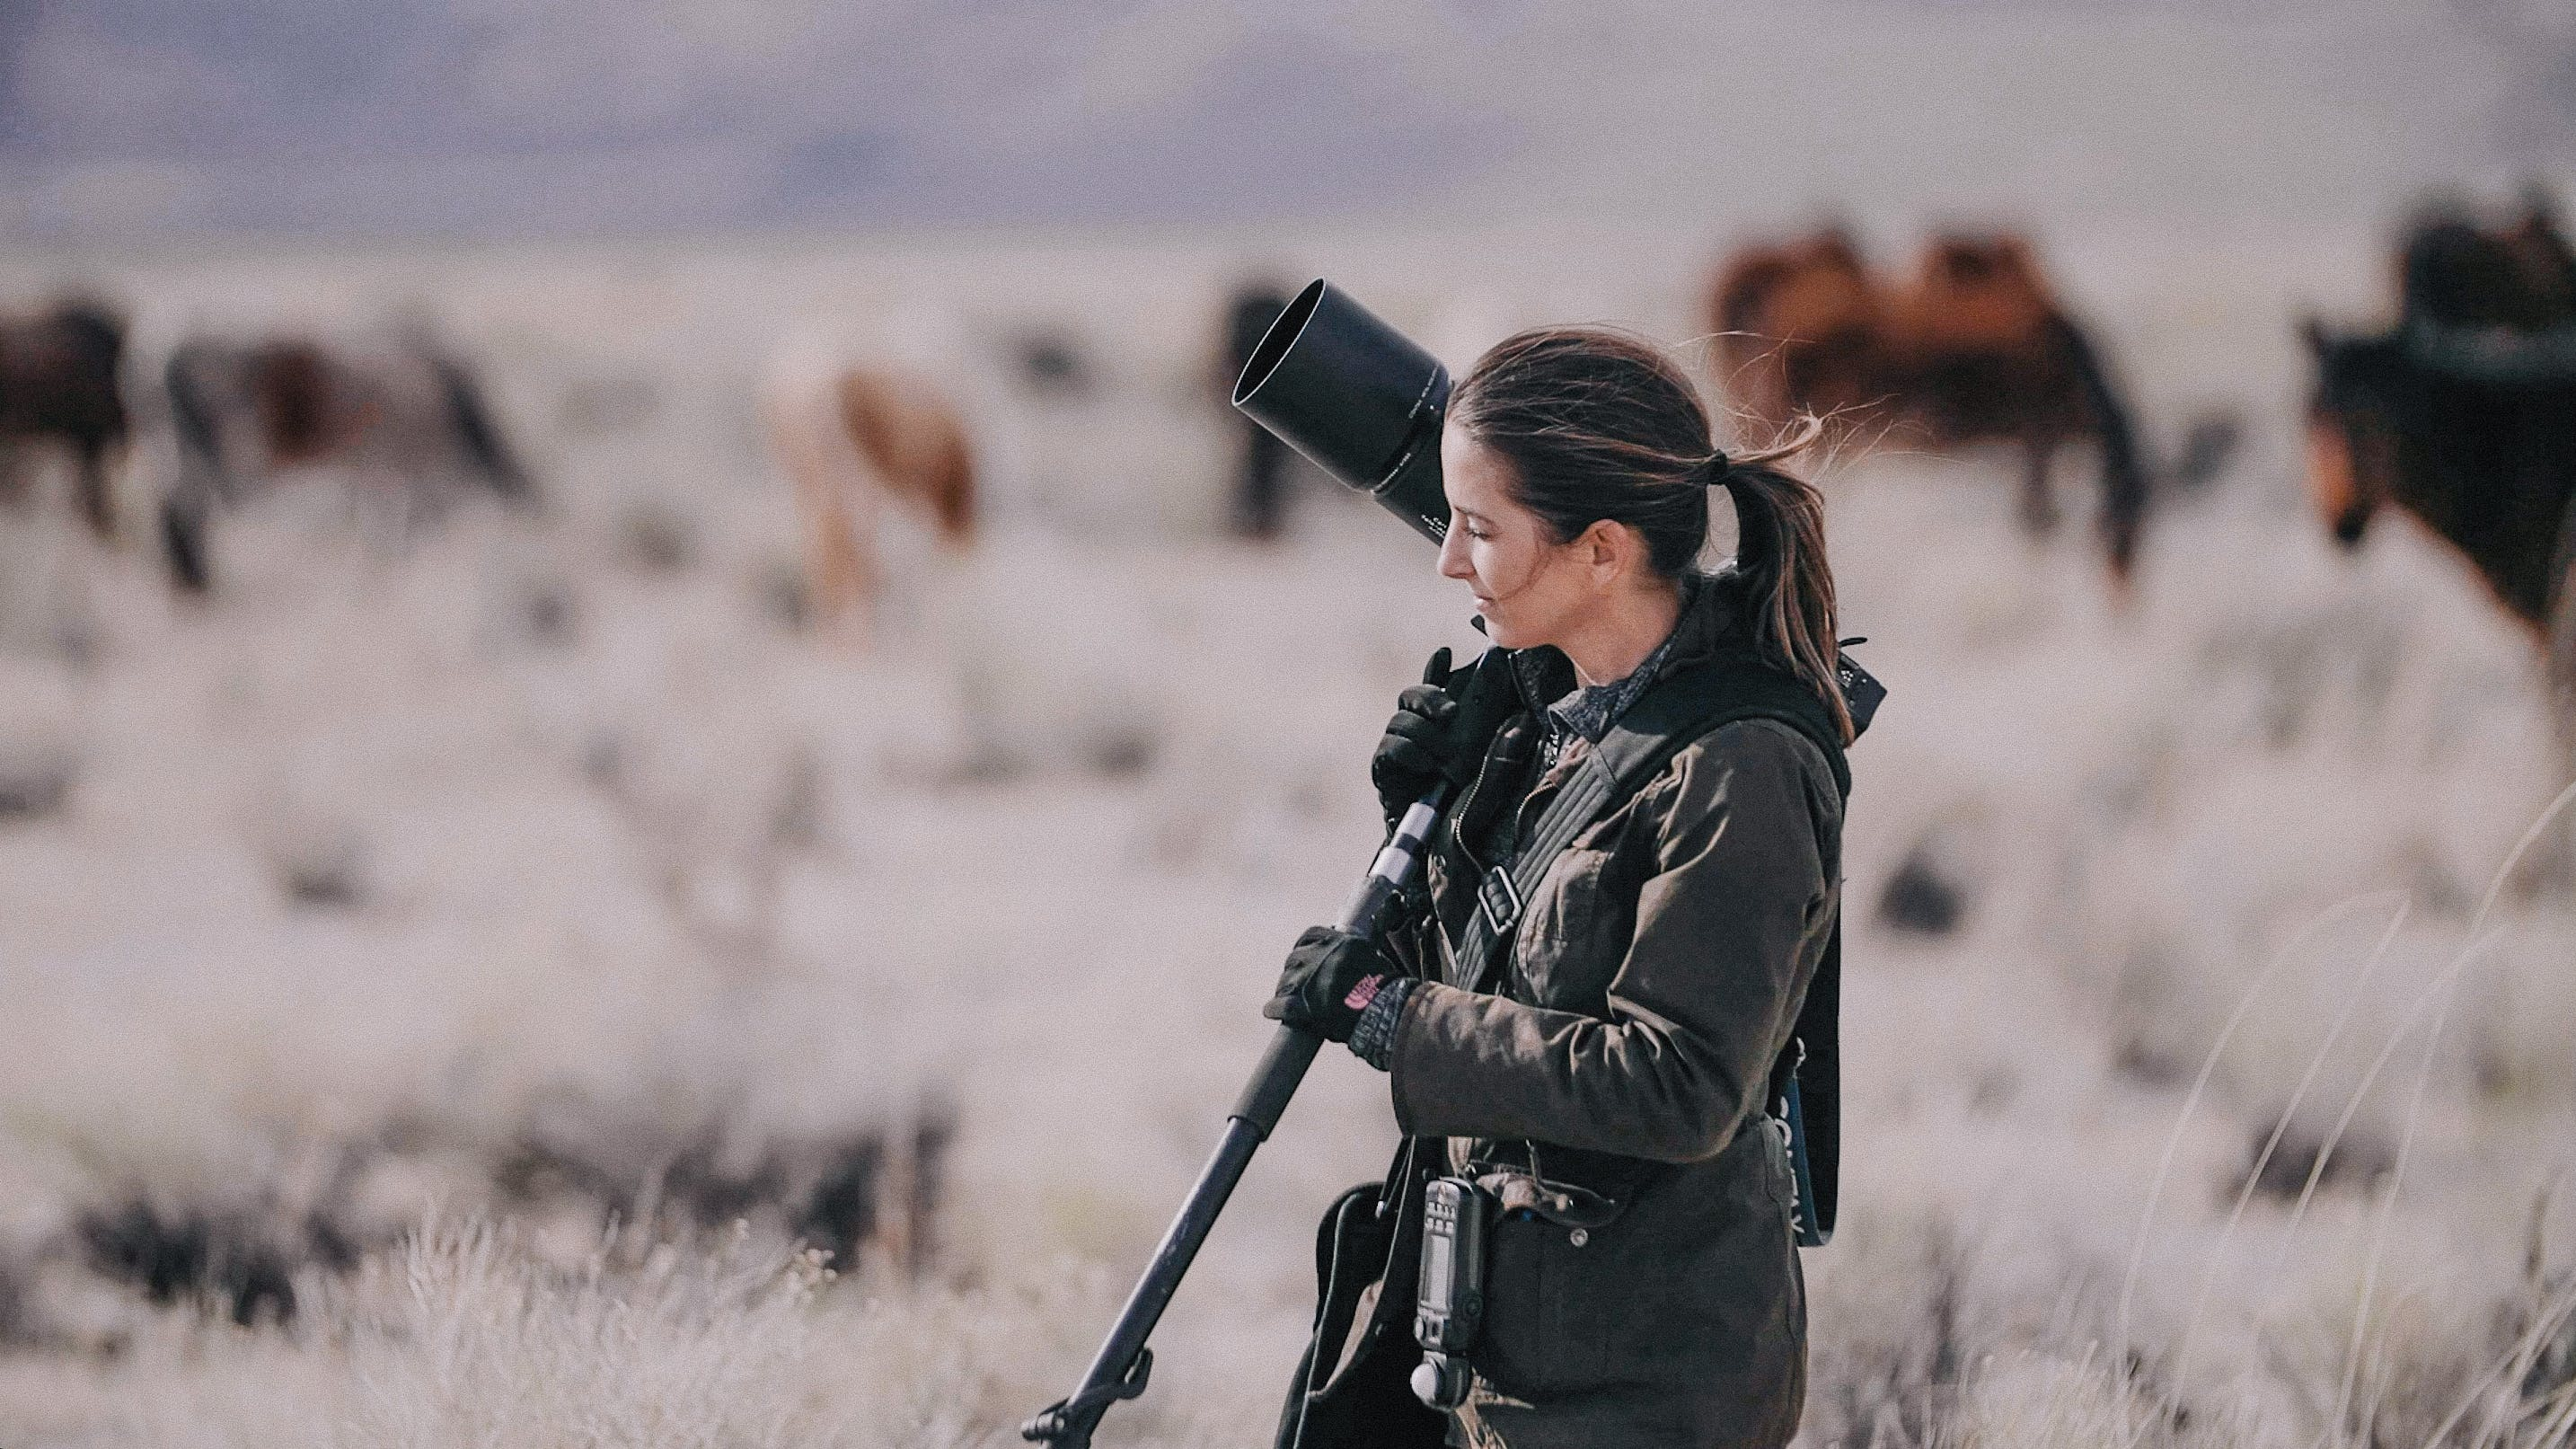 Professional wedding photographer KT Merry photographing her latest passion project; wild mustangs in Northern Nevada